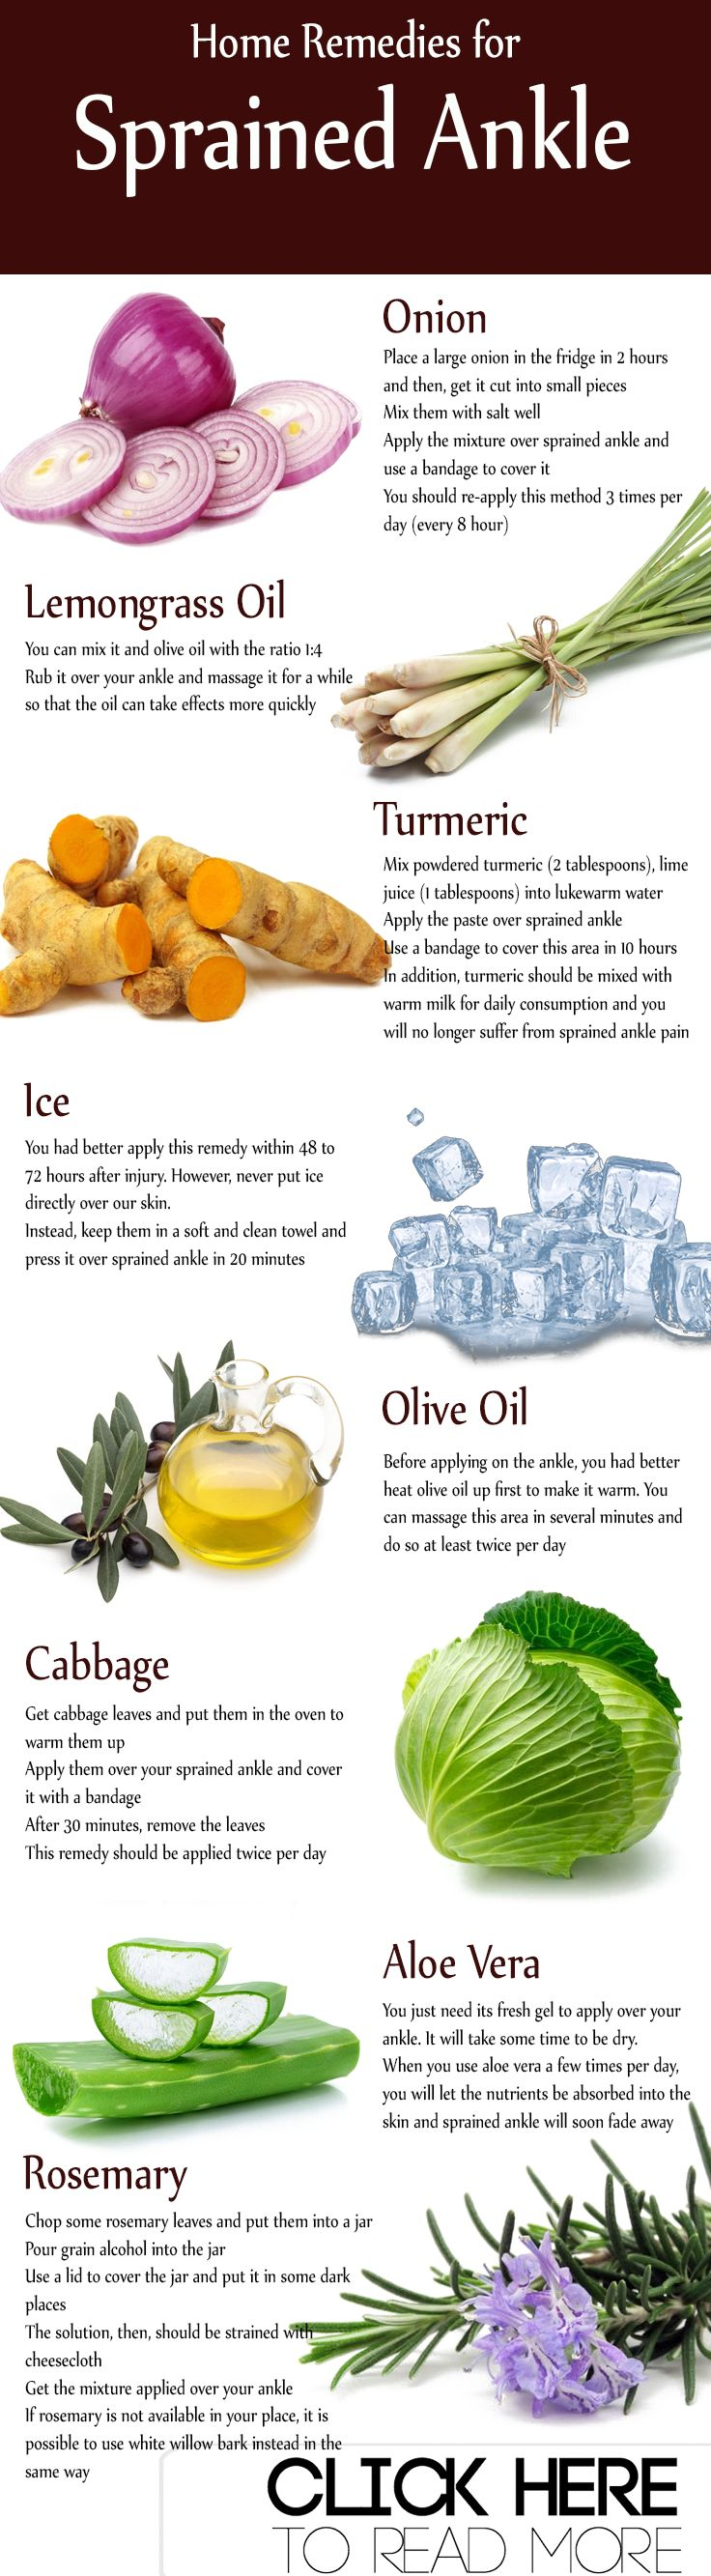 Top 15 Natural Home Remedies for Sprained Ankle:What is Sprained Ankle? Causes What Increases Your Risks? Symptoms Home Remedies for Sprained Ankle #Olive Oil #Onion #Ice #Epsom Salt #Turmeric #Castor Oil #Lemongrass Oil #Arnica #Cabbage #Rosemary #White Fir Essential Oil #Aloe Vera #Helichrysum Essential Oil #Sweet Marjoram Oil #Compression #What to Avoid #When to See Doctor #How to Prevent Sprained Ankle